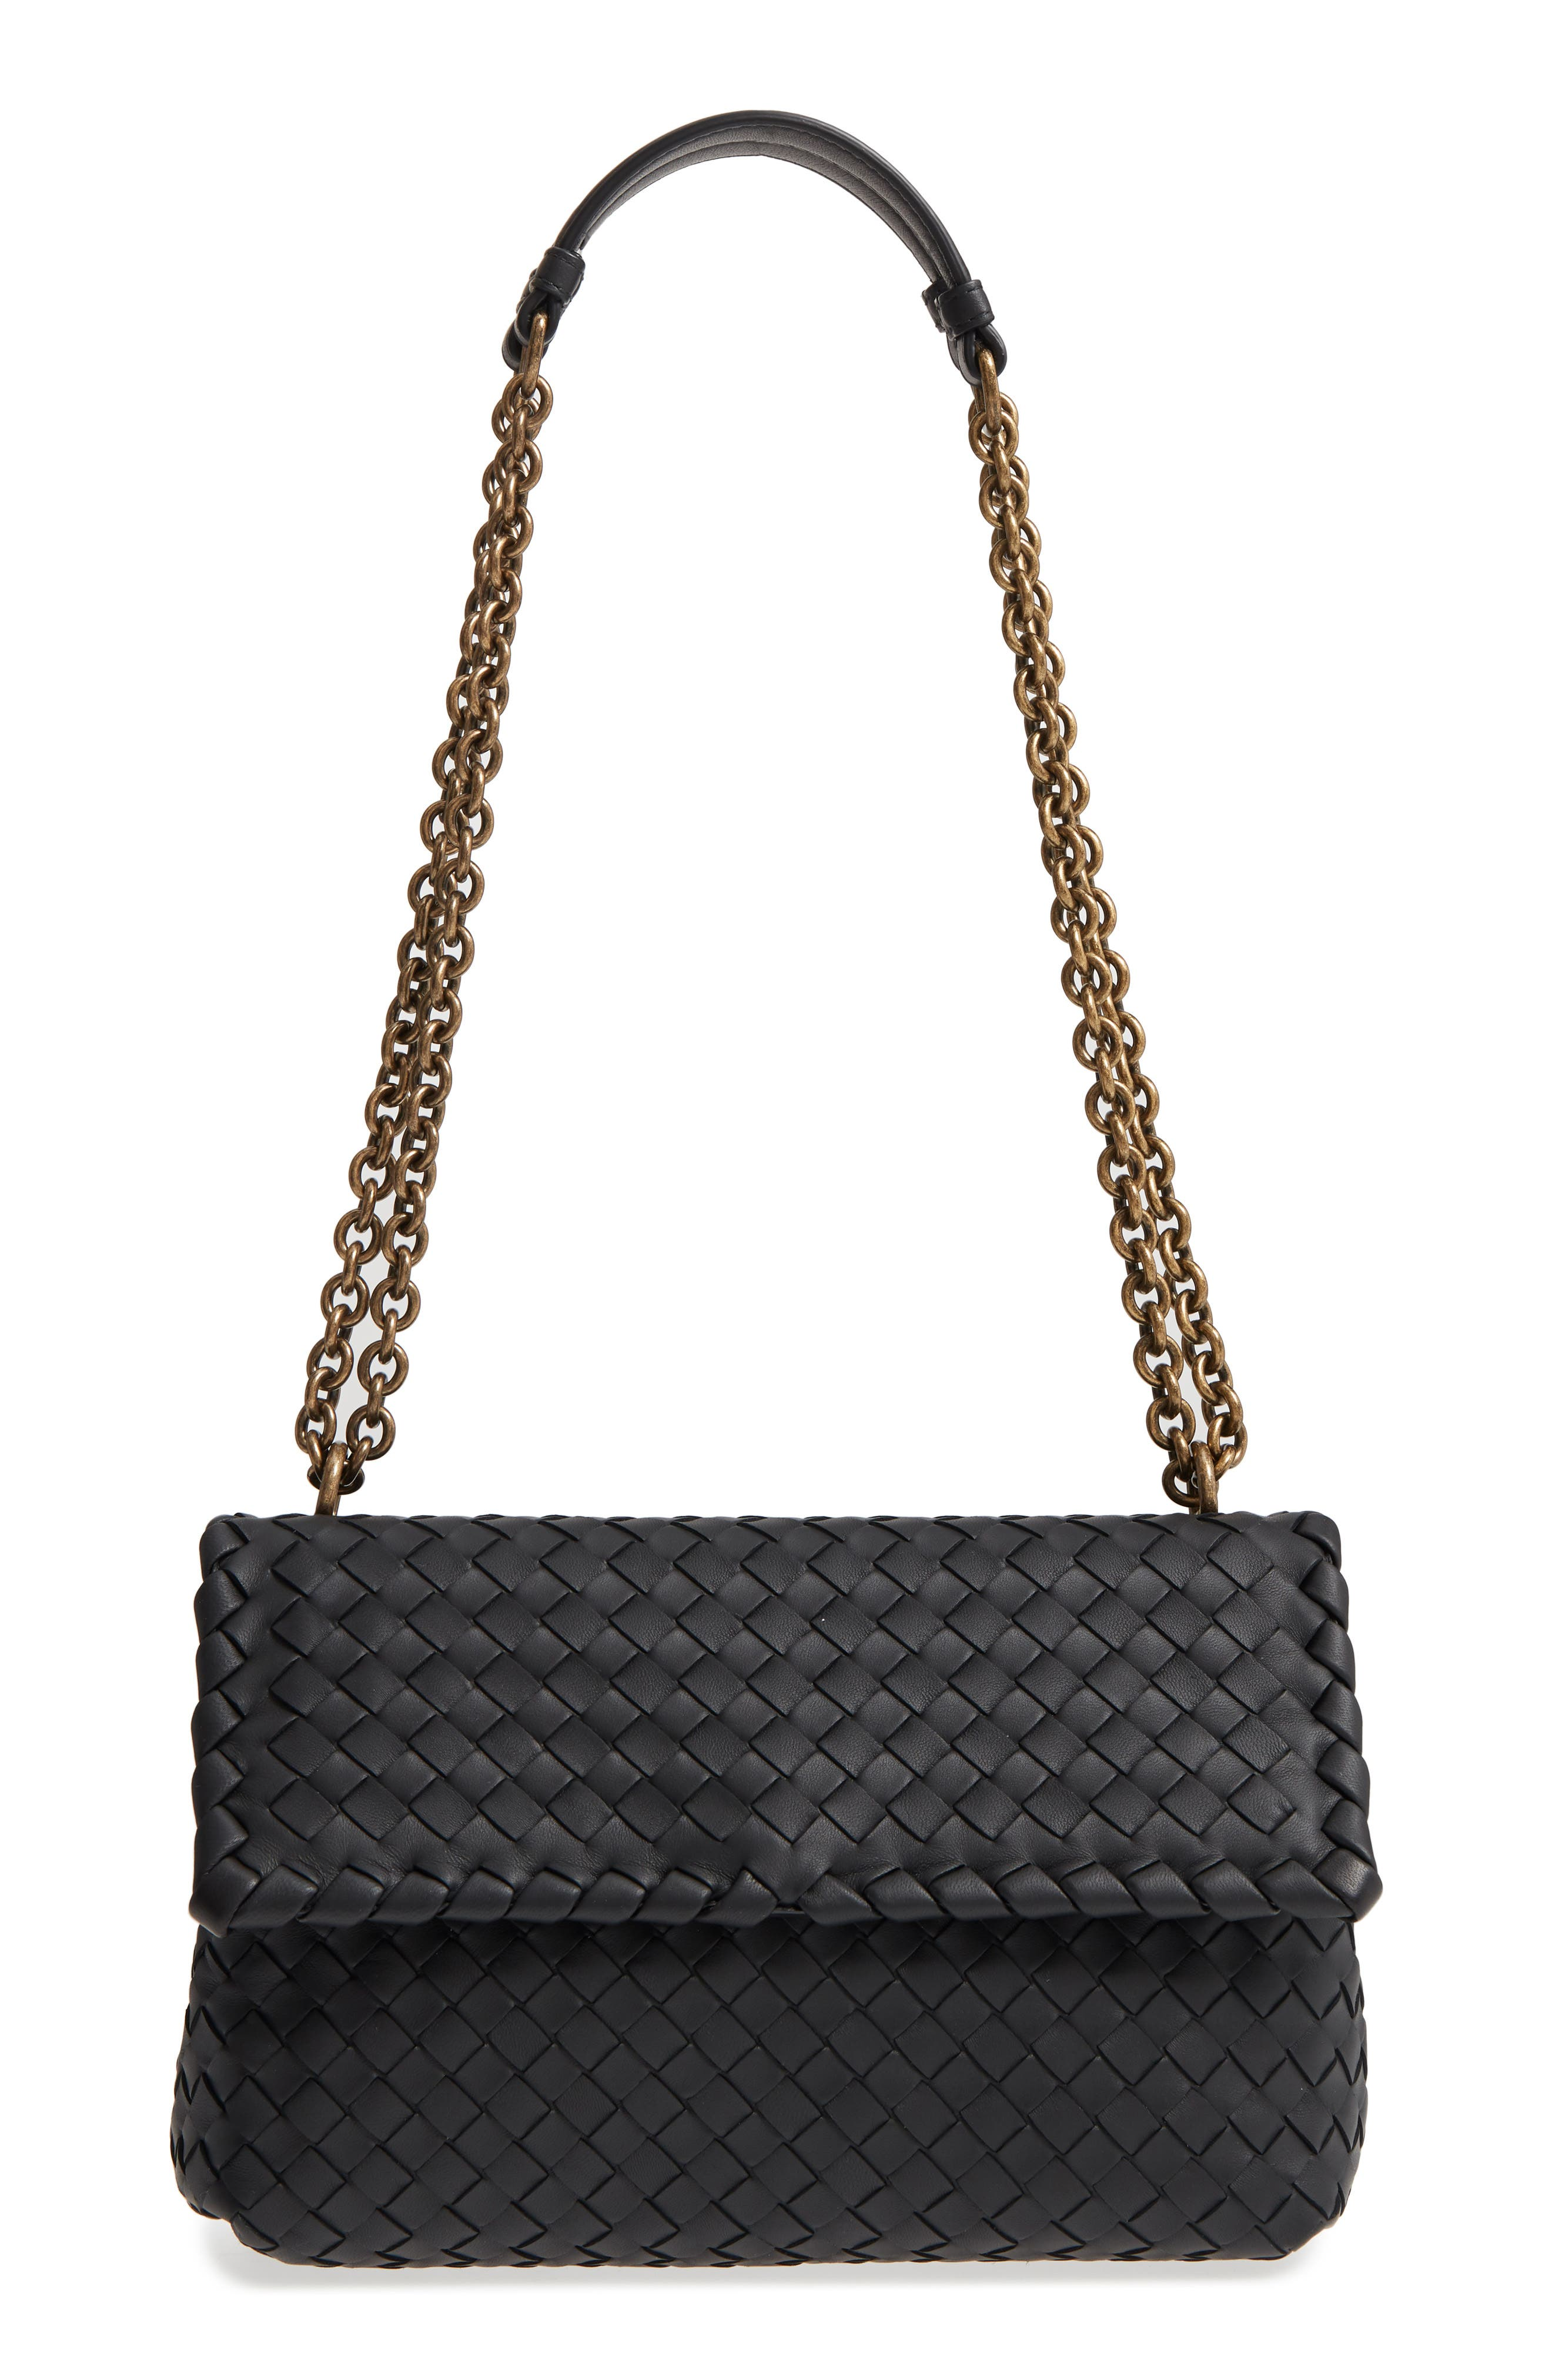 Small Olimpia Leather Shoulder Bag,                         Main,                         color, Nero